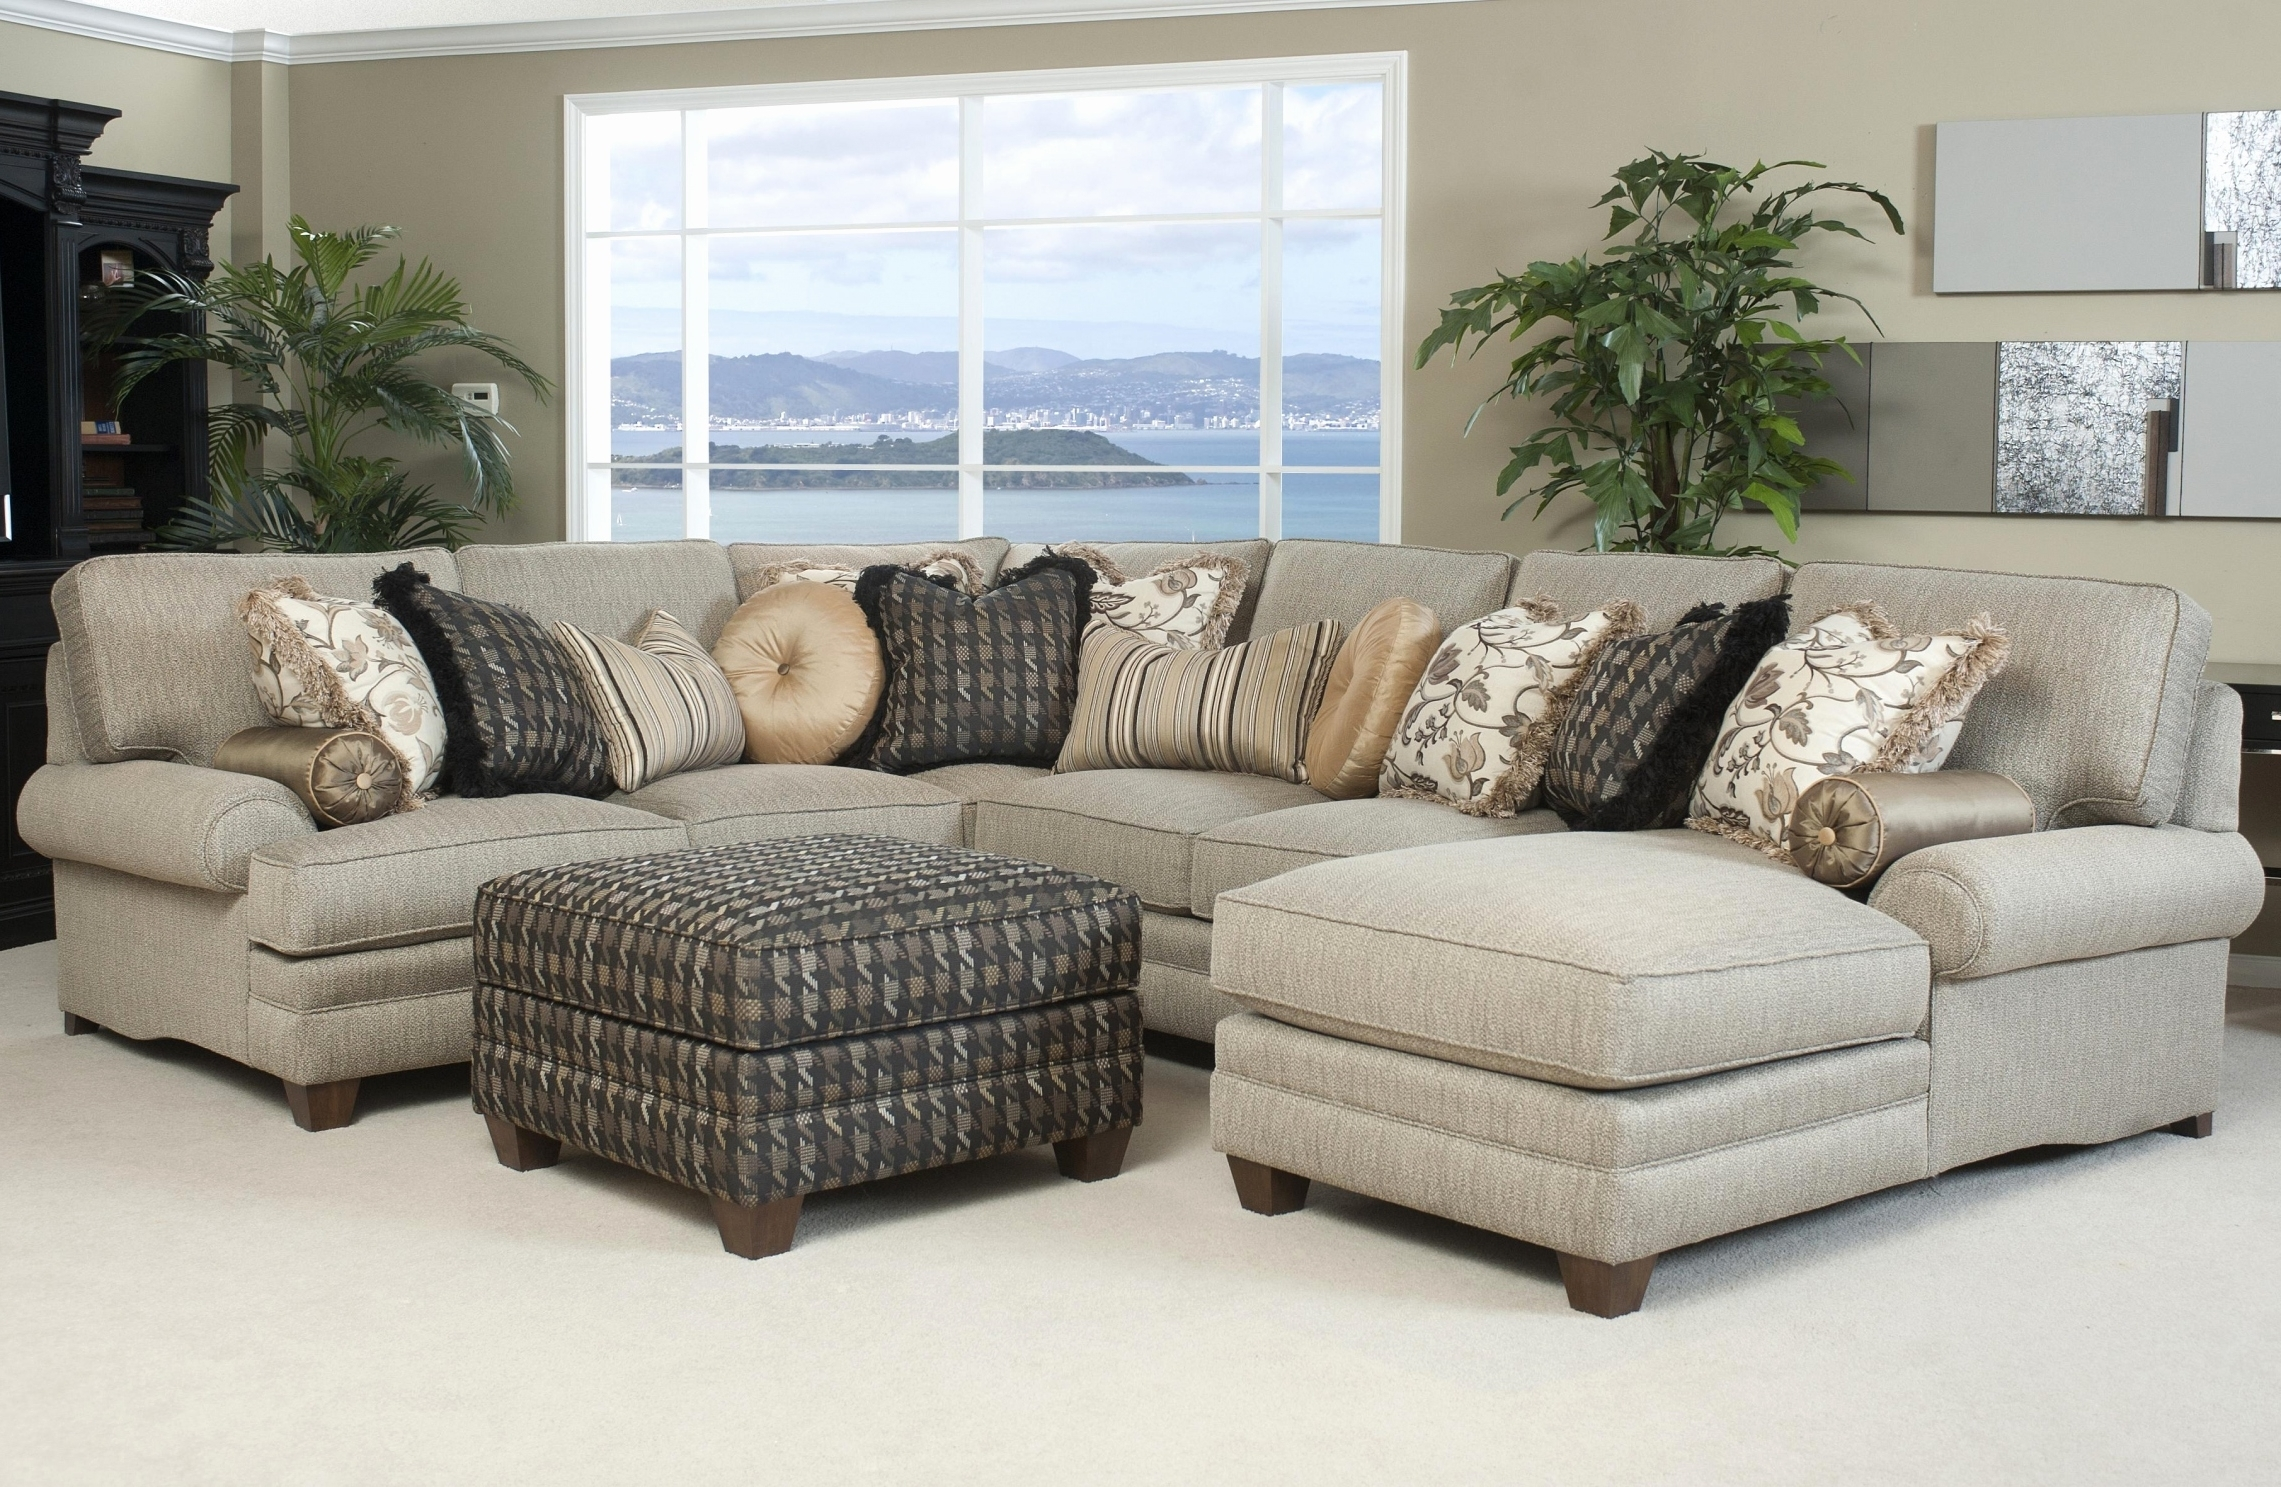 Well Known Halifax Sectional Sofas Pertaining To 32 Amazing Sectional Sofa With Chaise Lounge Pictures – Sectional (View 20 of 20)